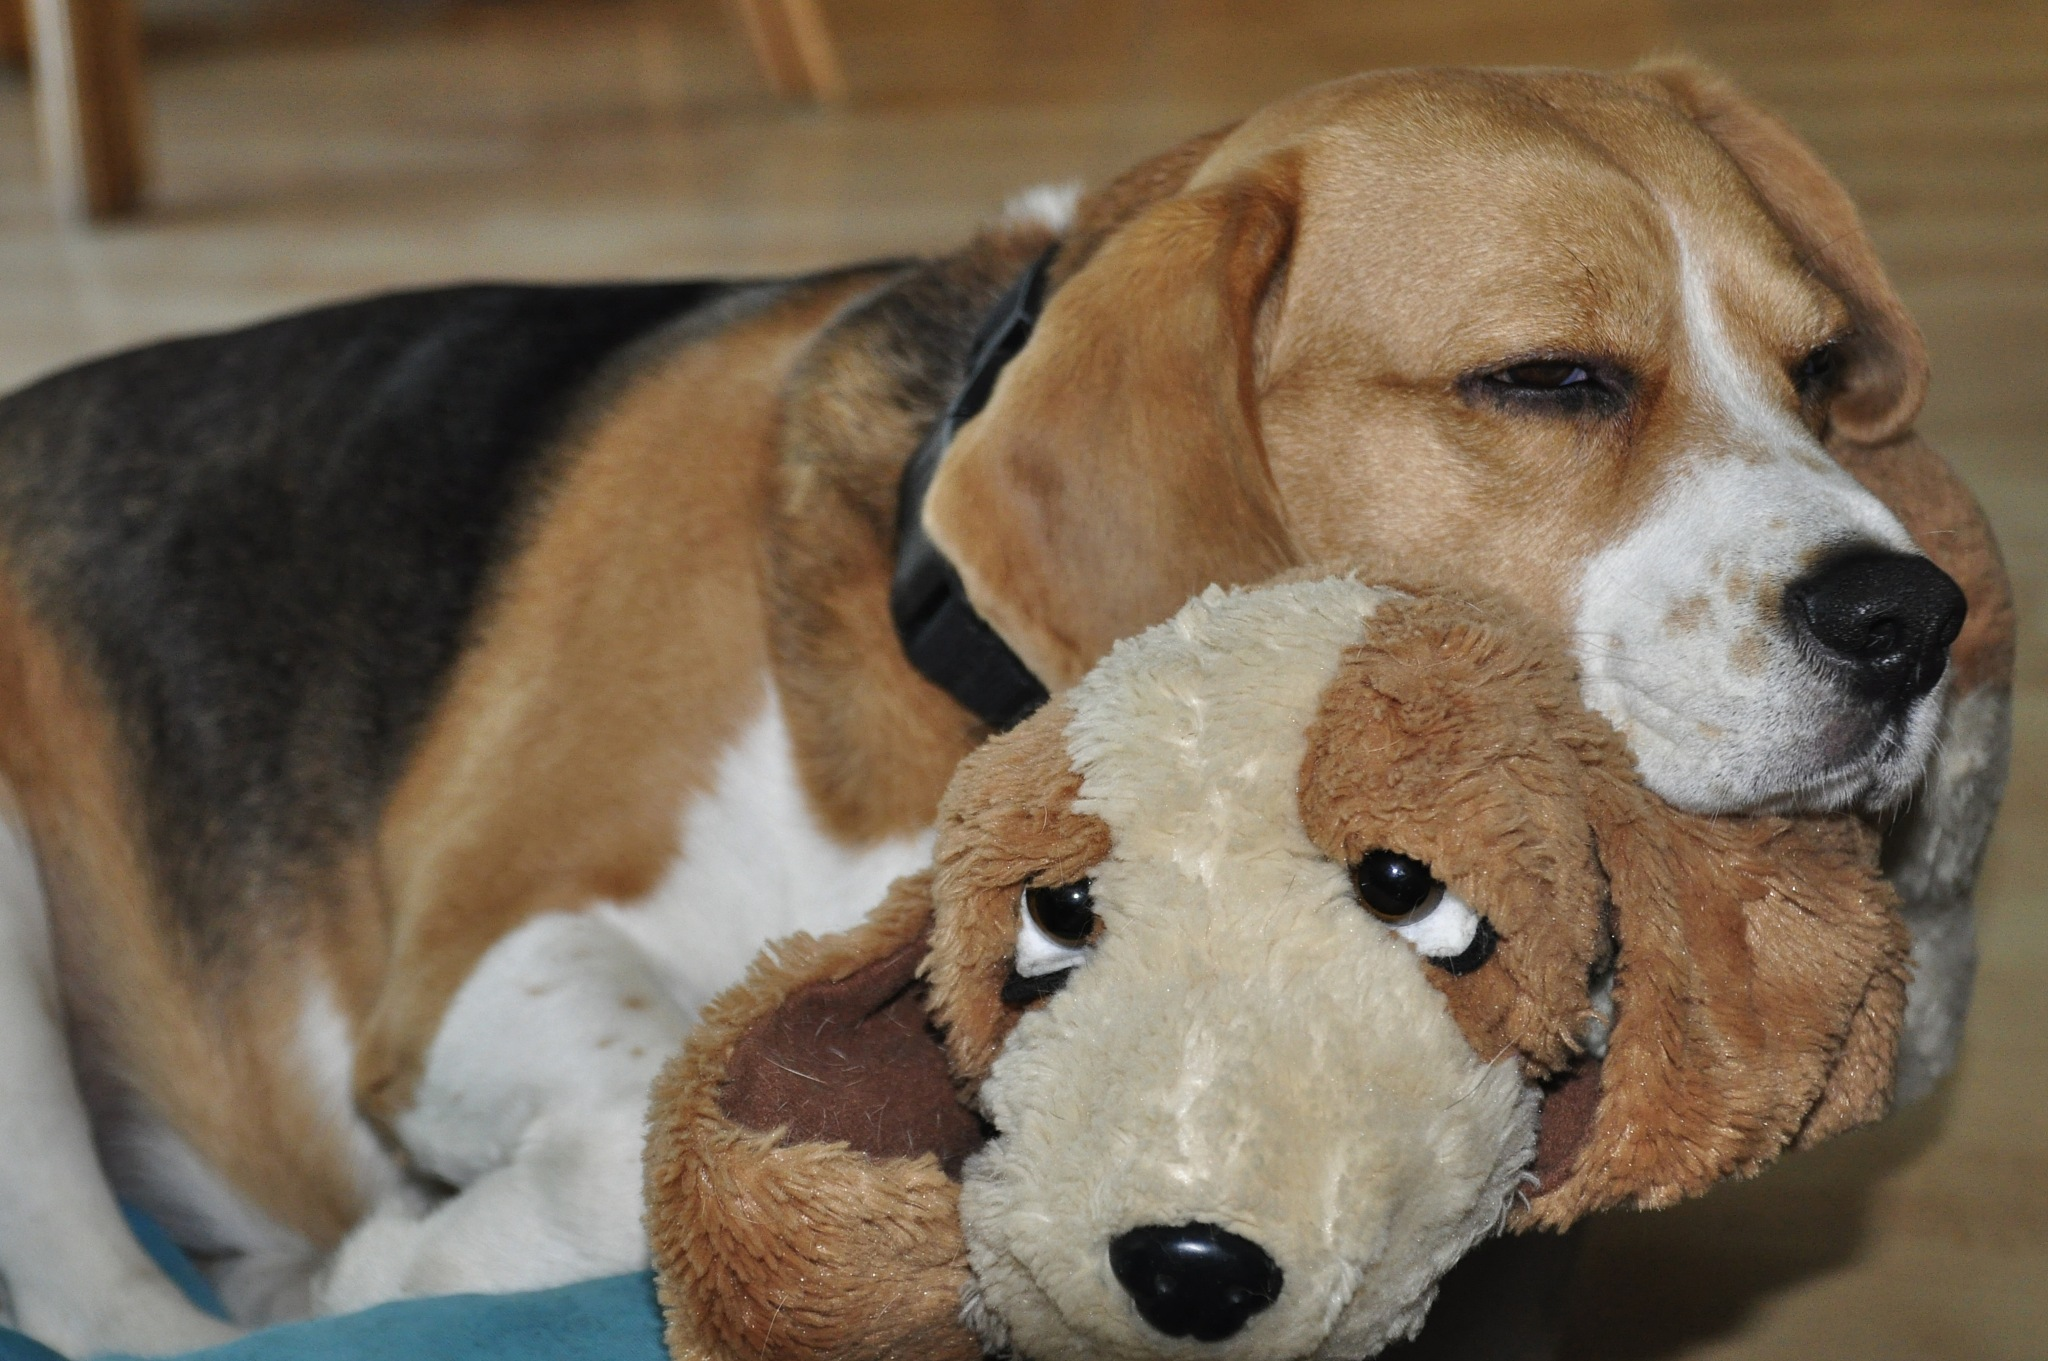 Beagle with toy by Jacob van der Veen